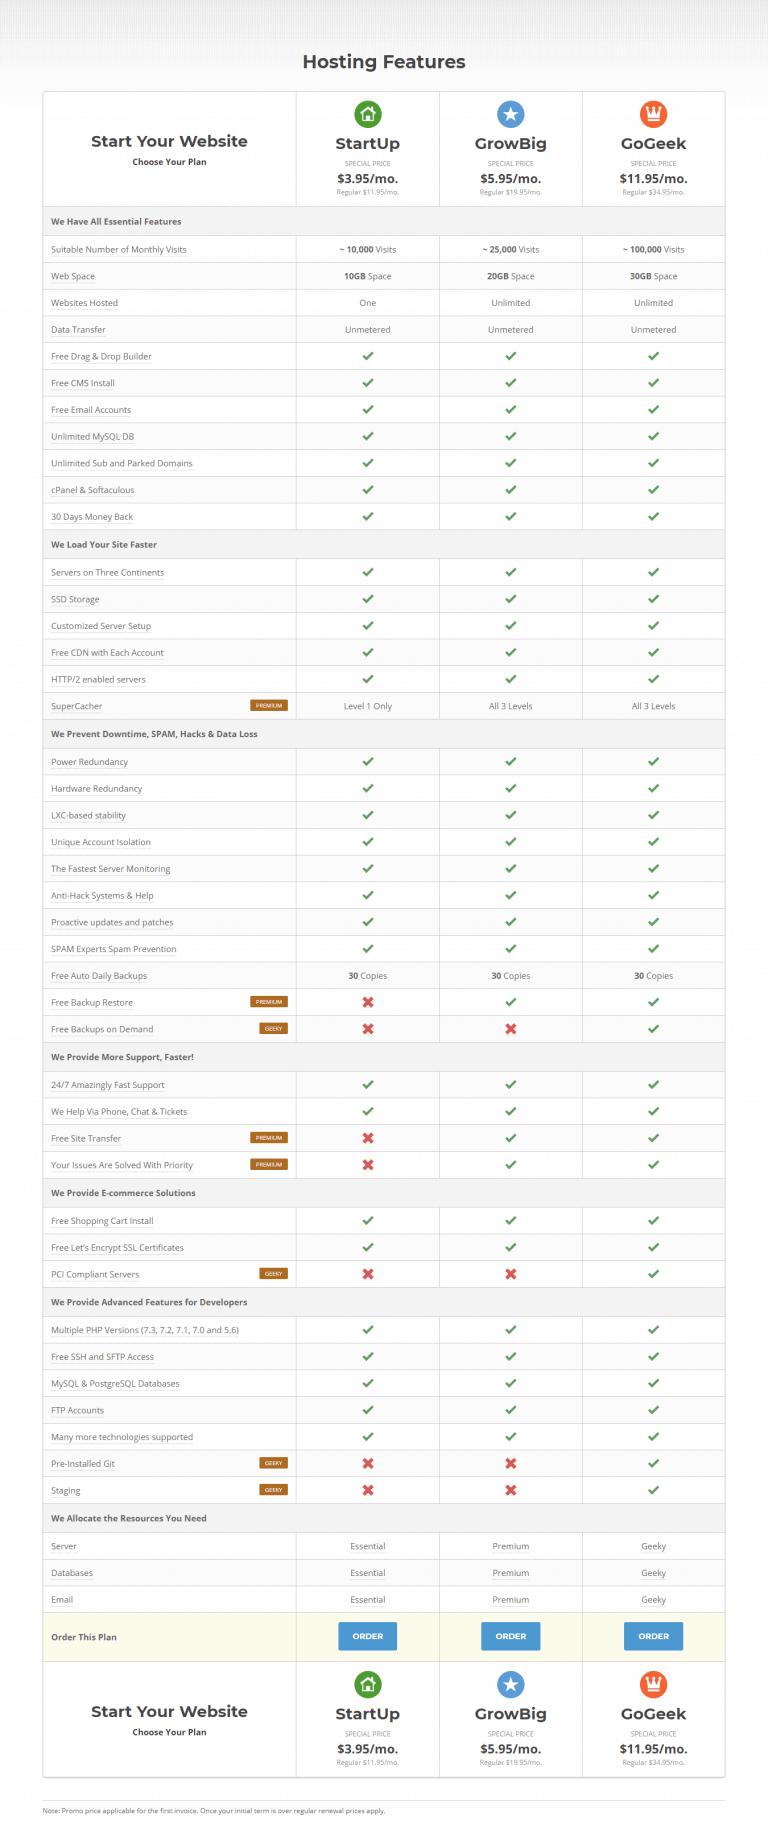 Comparison of all siteground plans